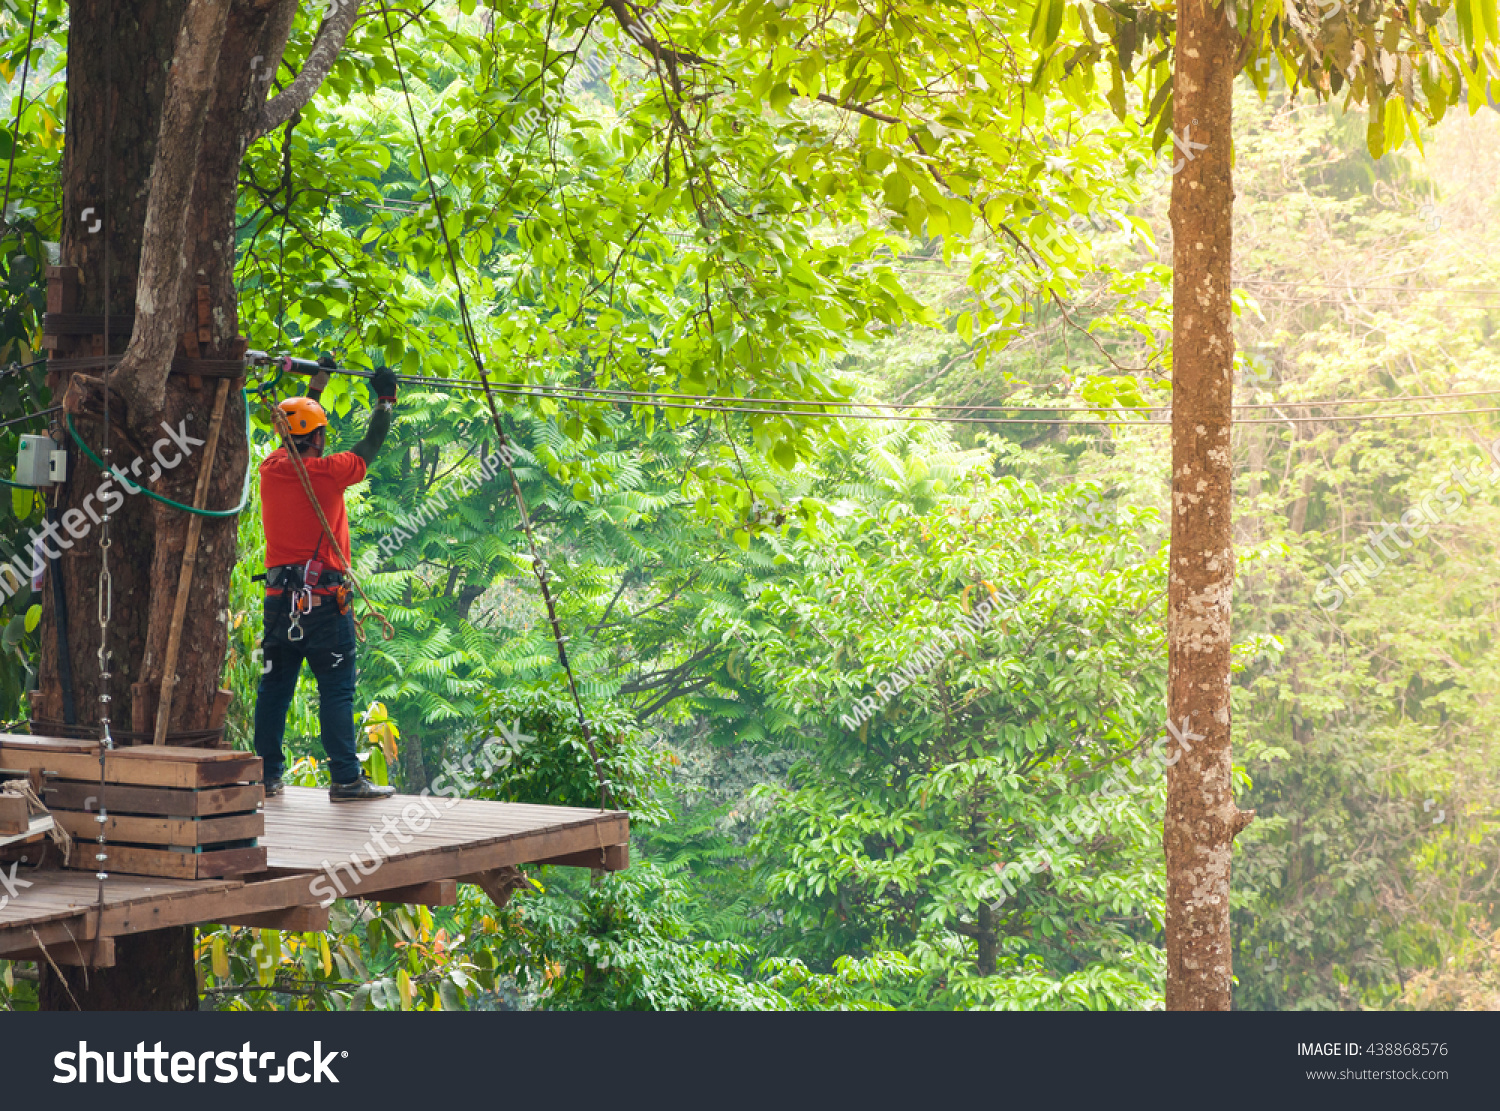 adventure zipline high wire park - people on course in mountain helmet and safety equipment,ready to descend on zipline in forest, extreme sport #438868576